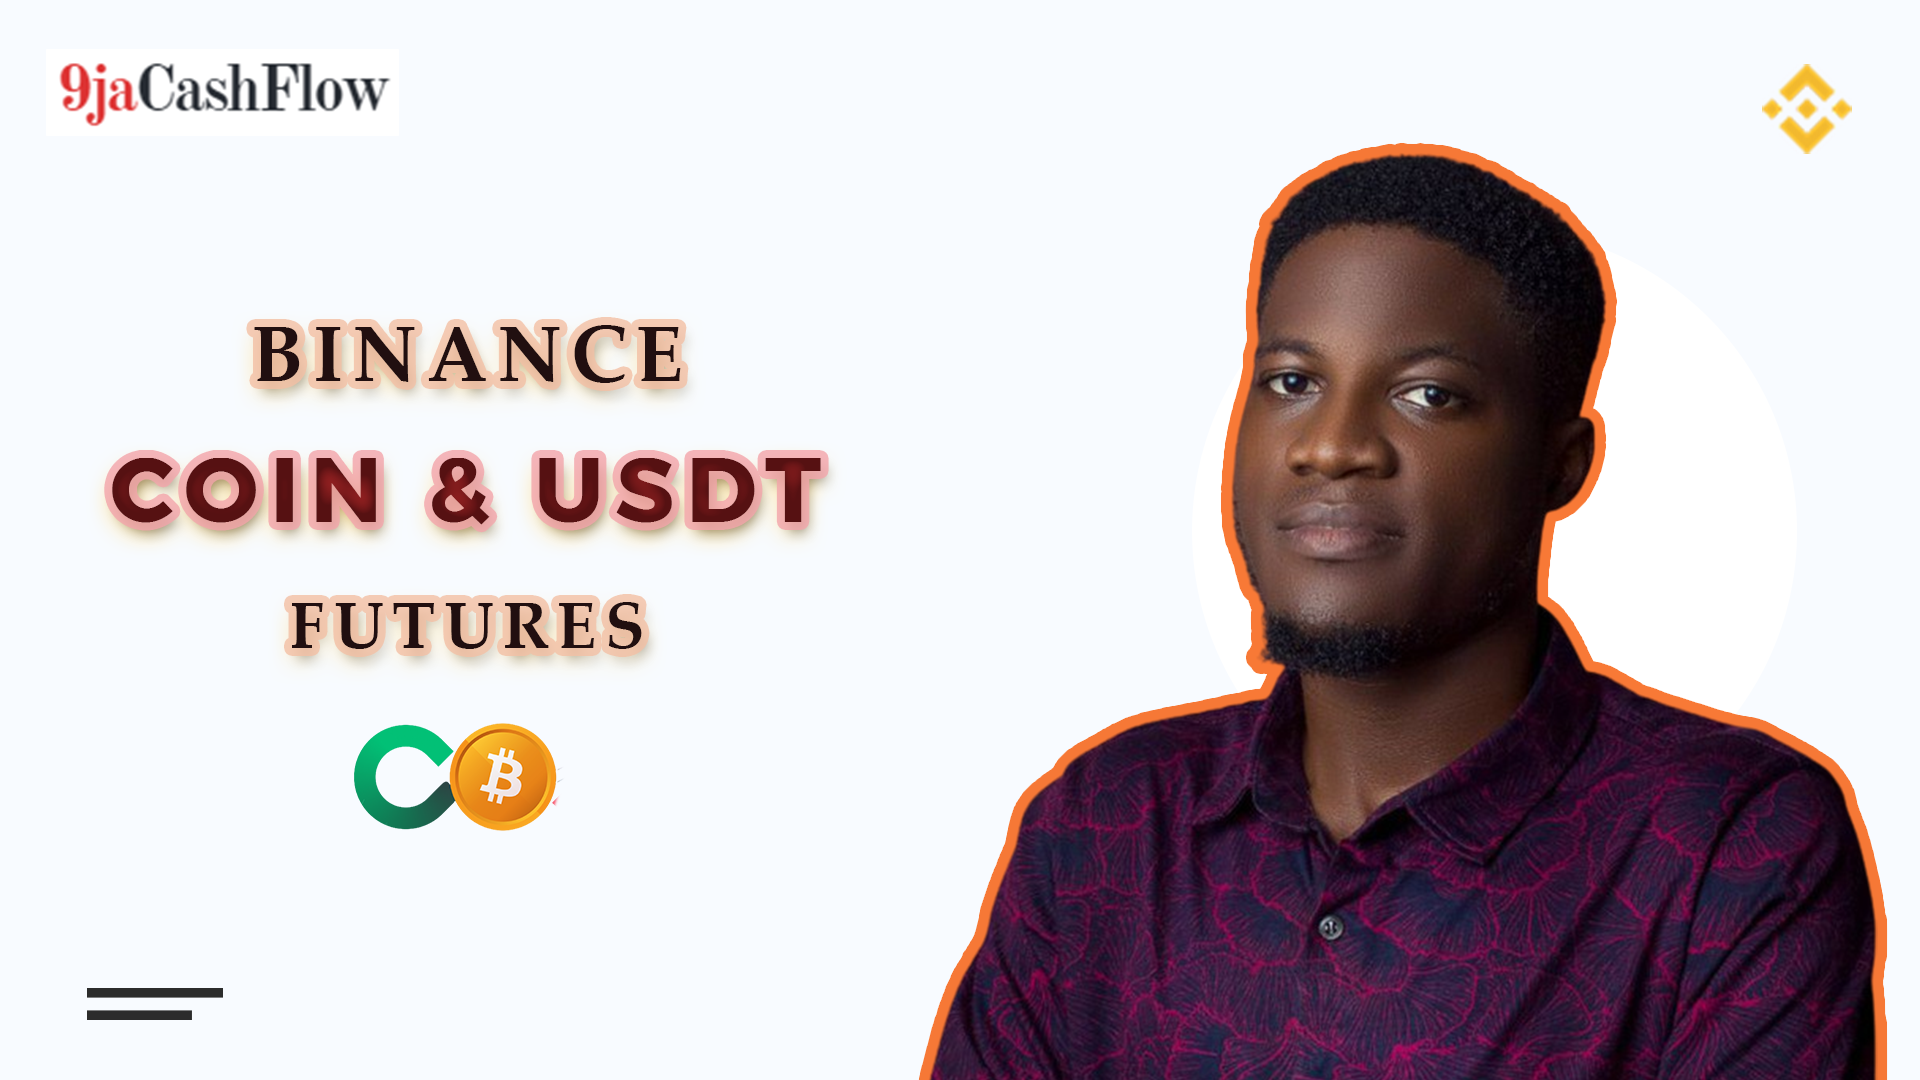 Binance USDT and Coin Futures